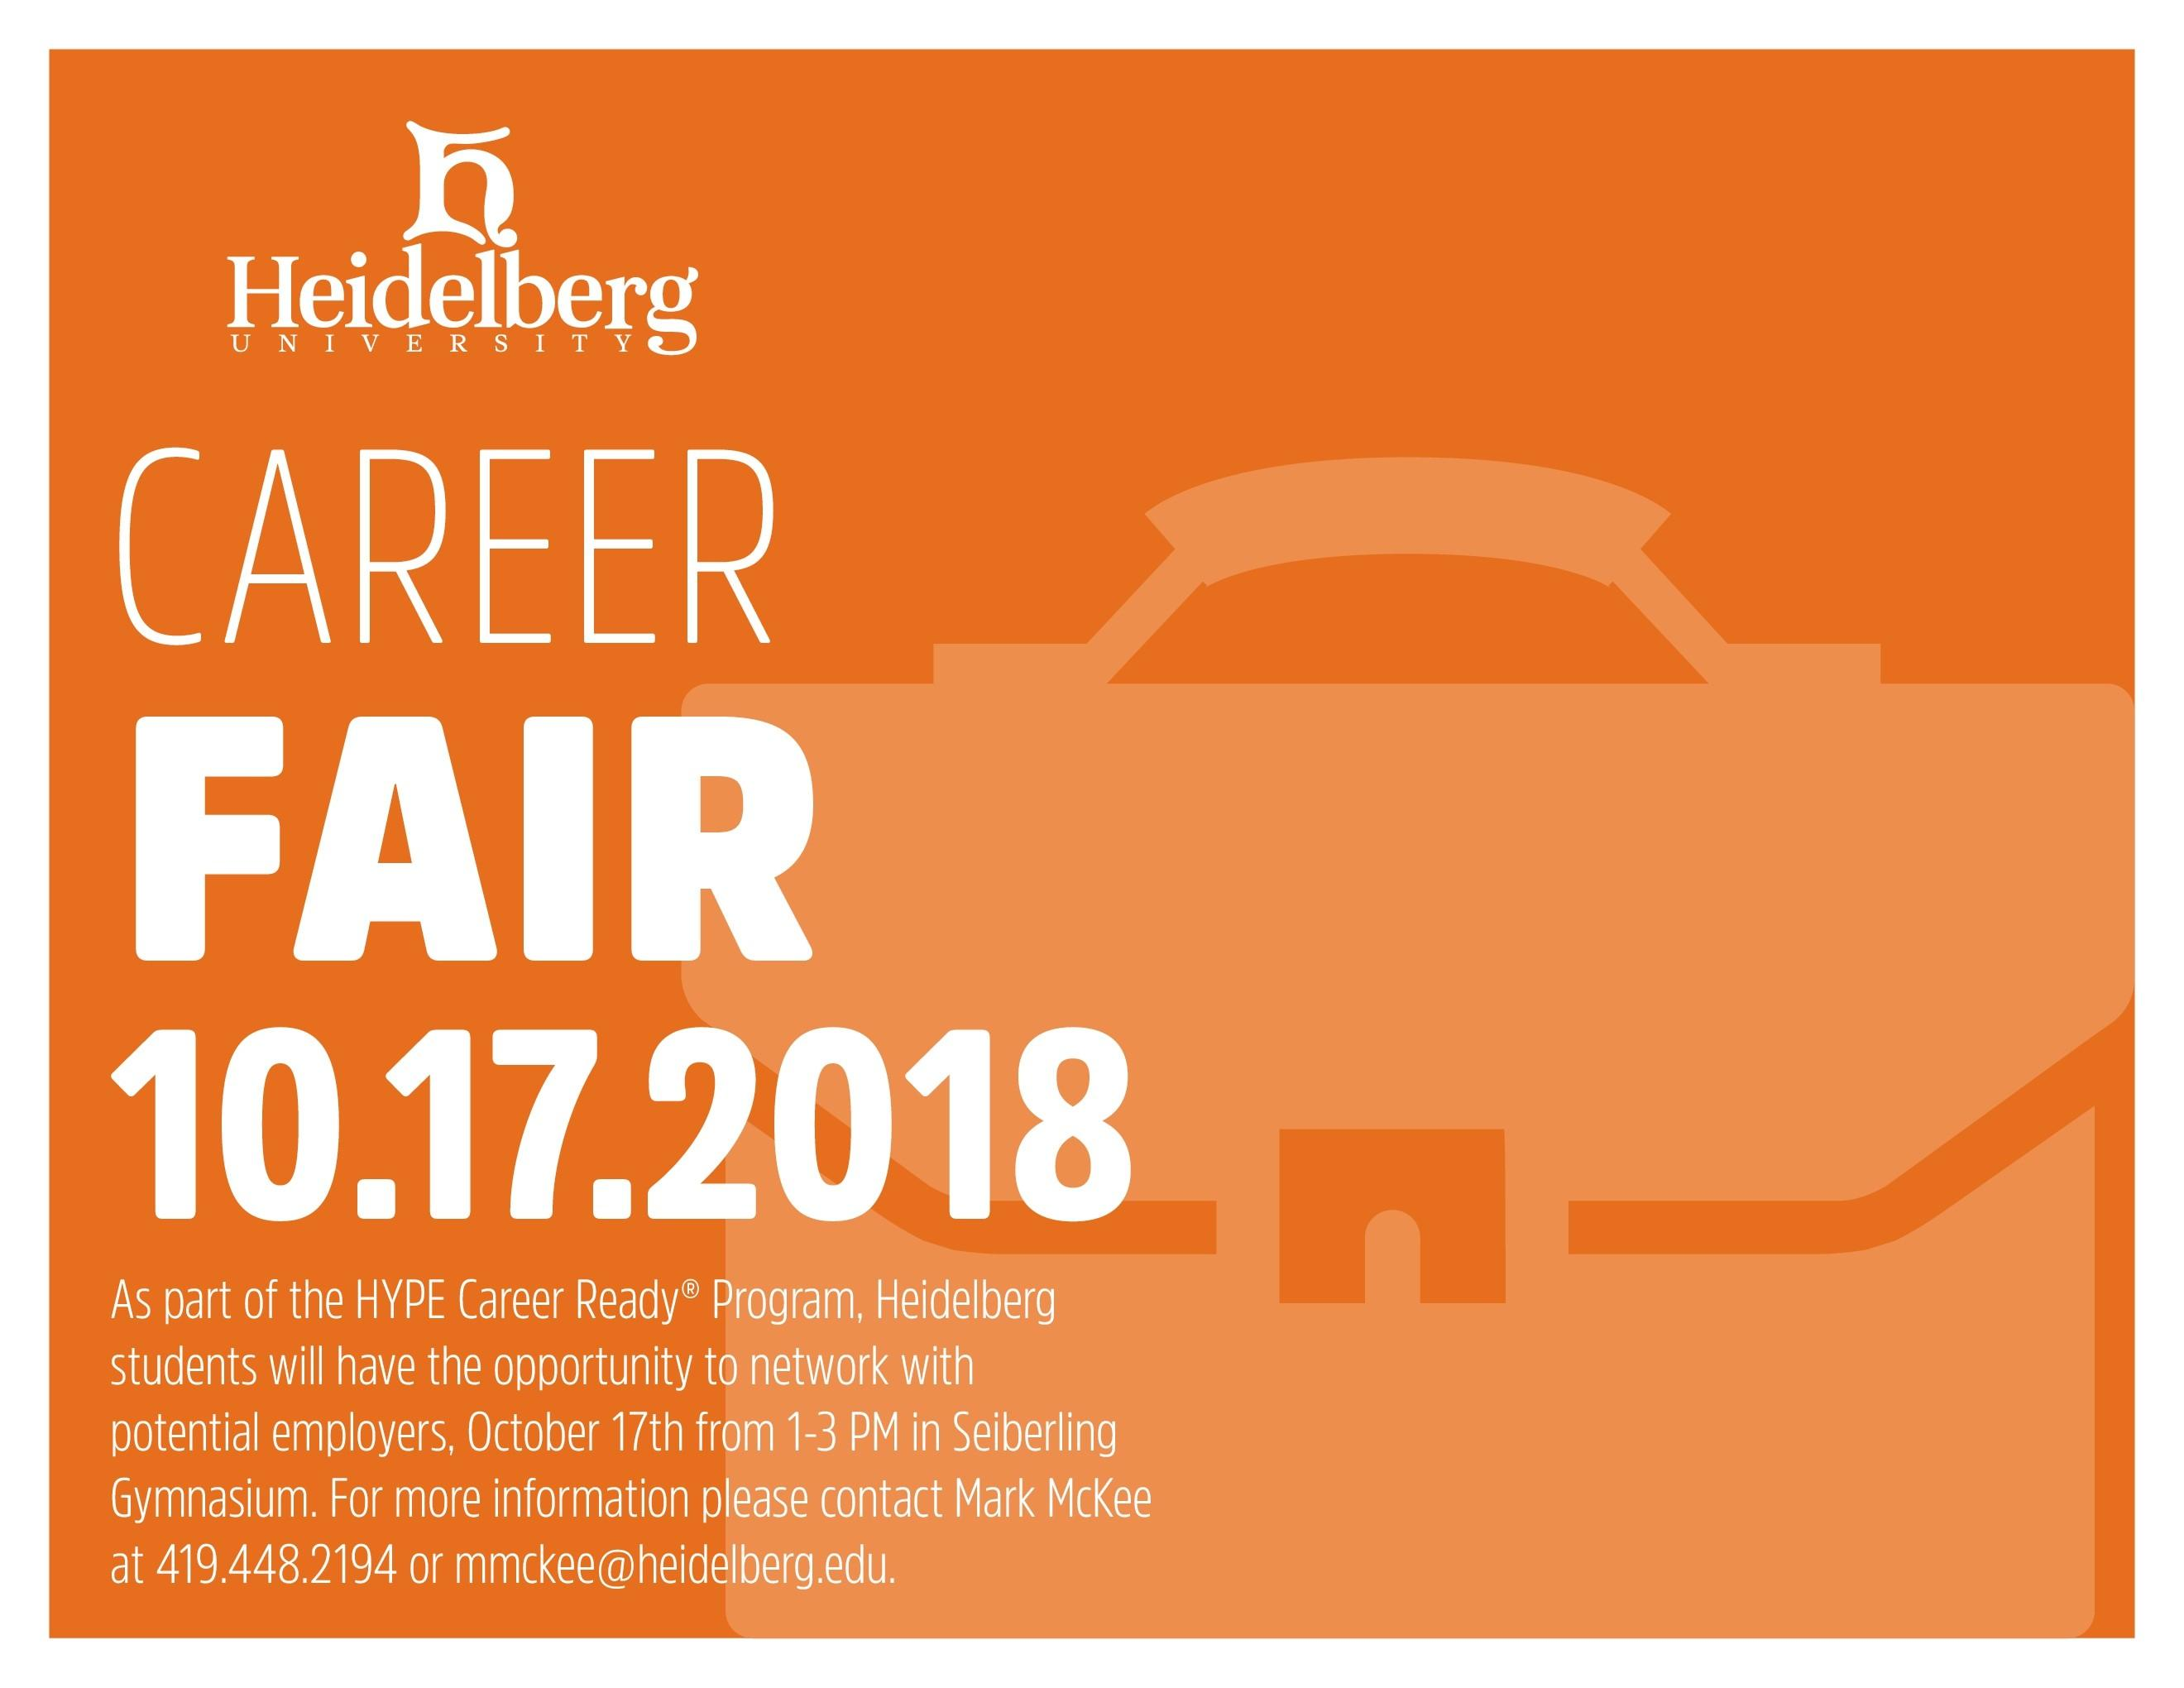 Heidelberg University Career Fair